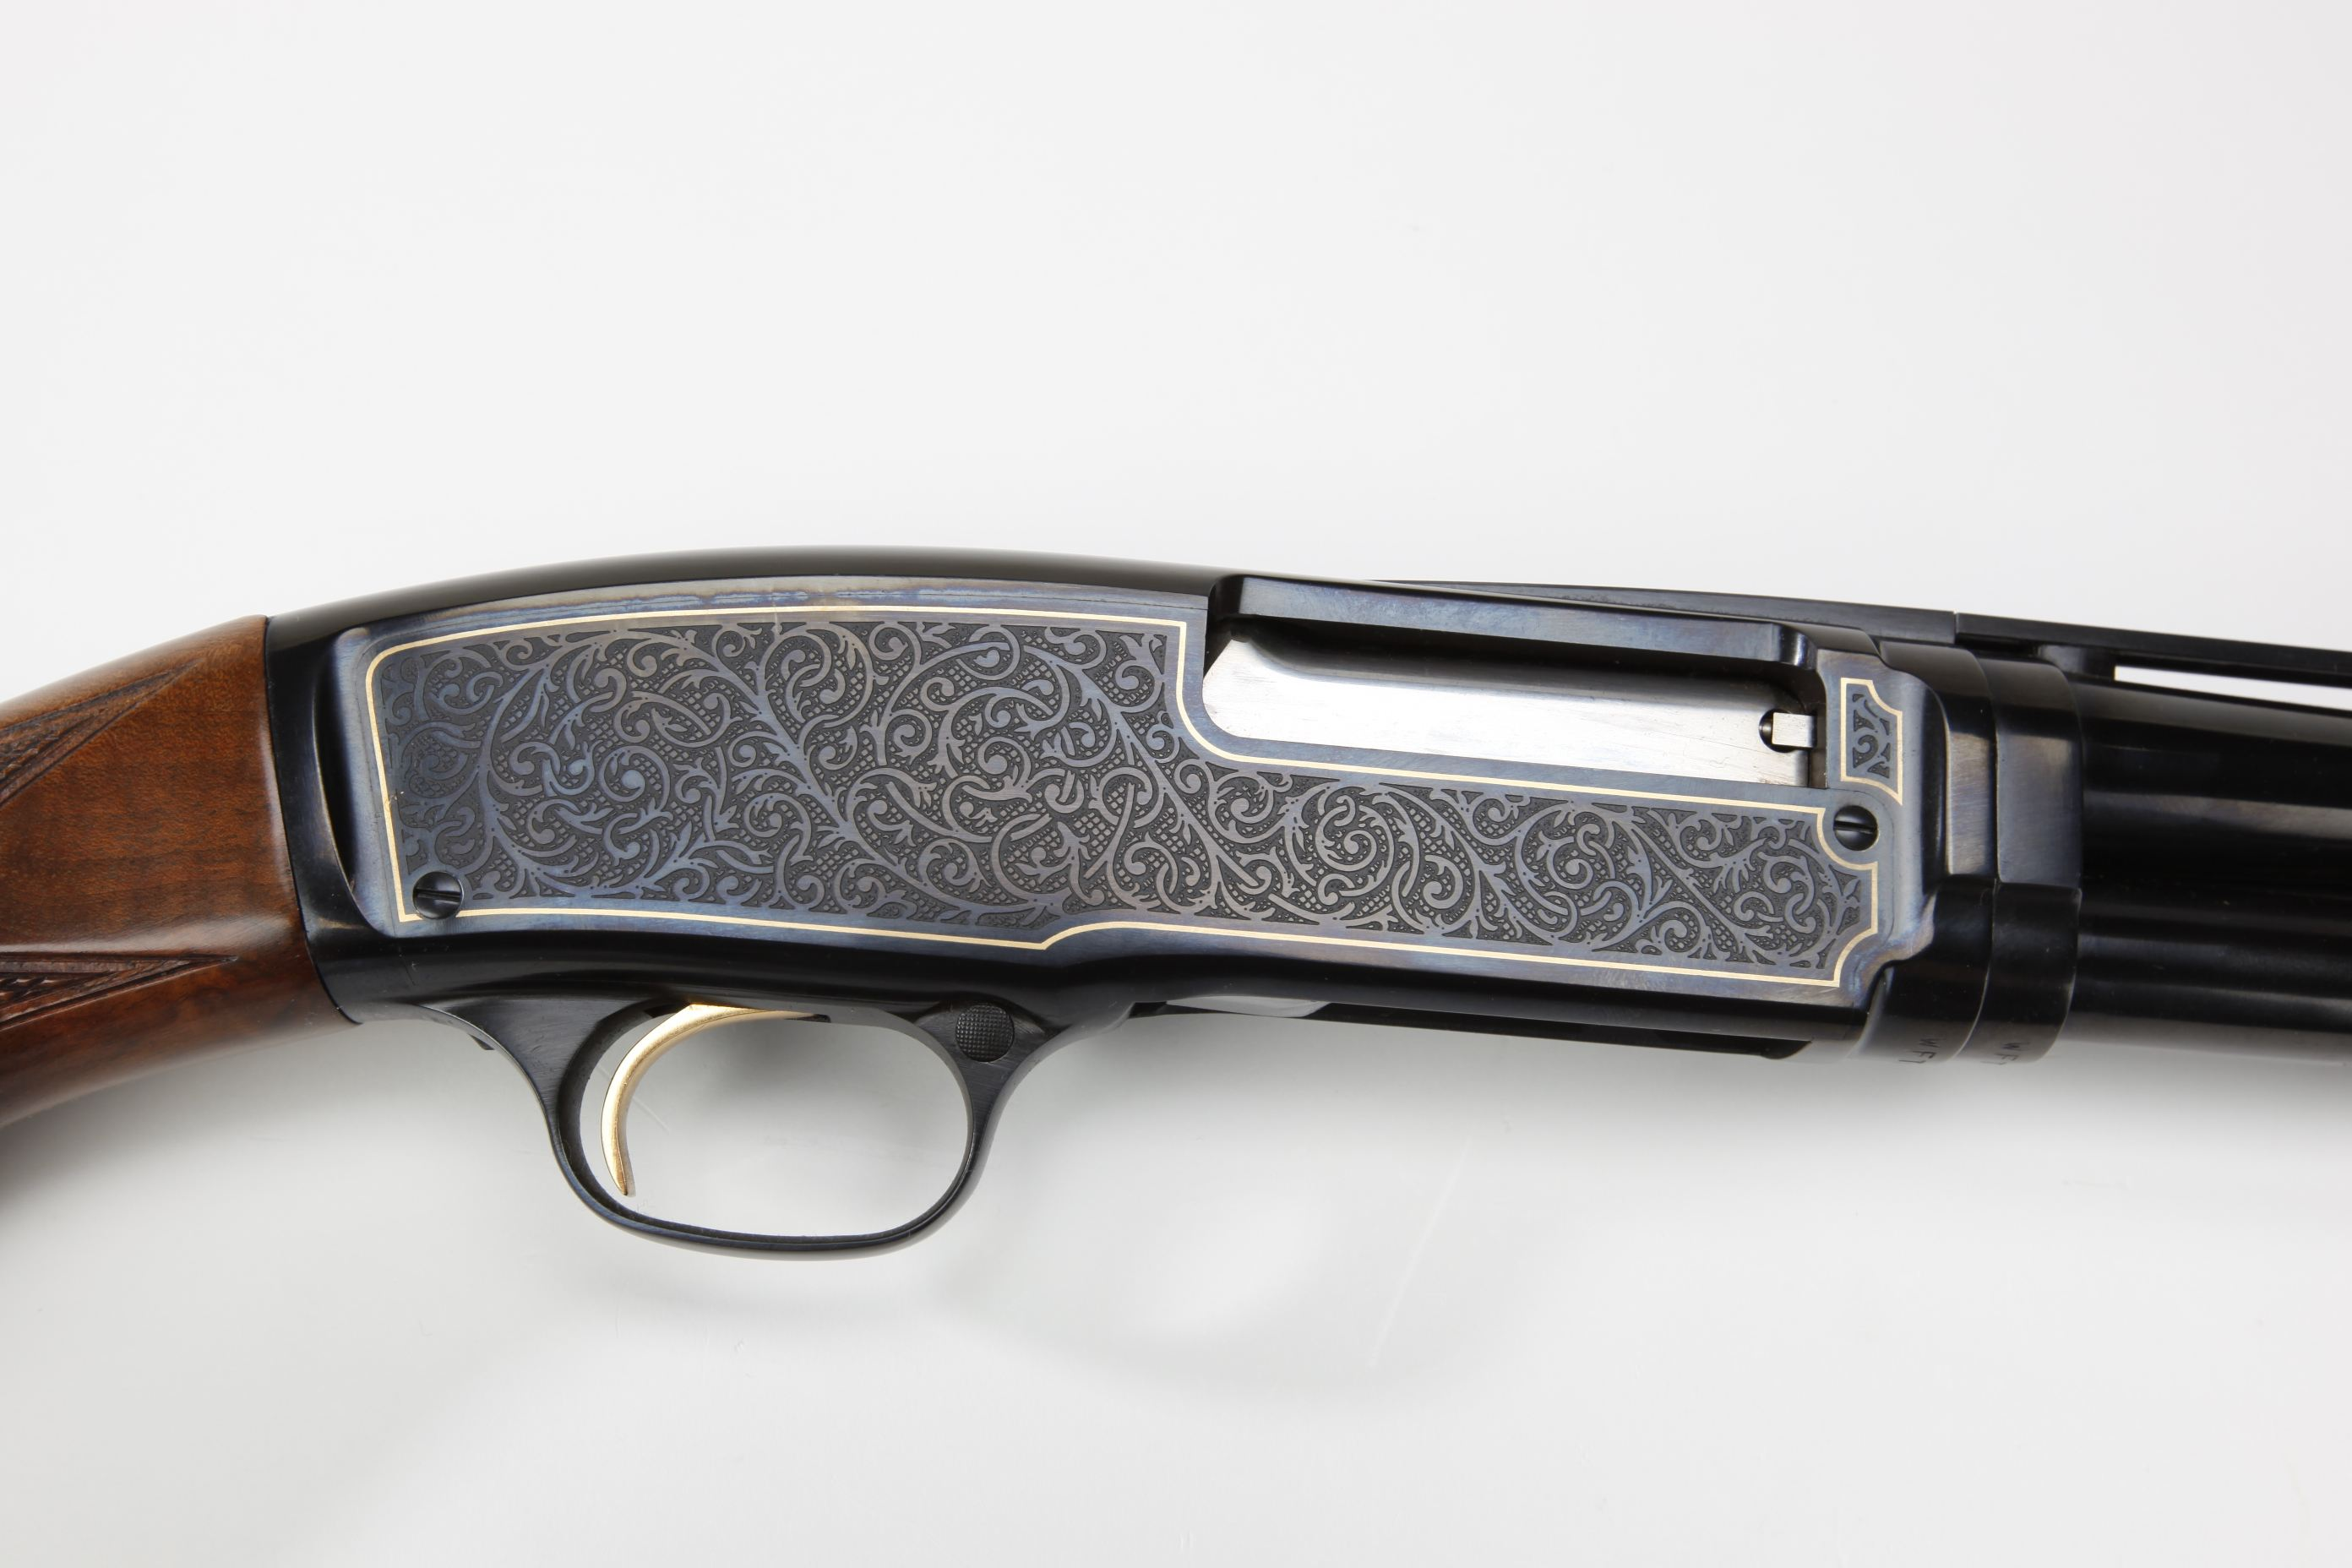 Winchester (New Haven, CT) Model 42 Slide-Action Shotgun